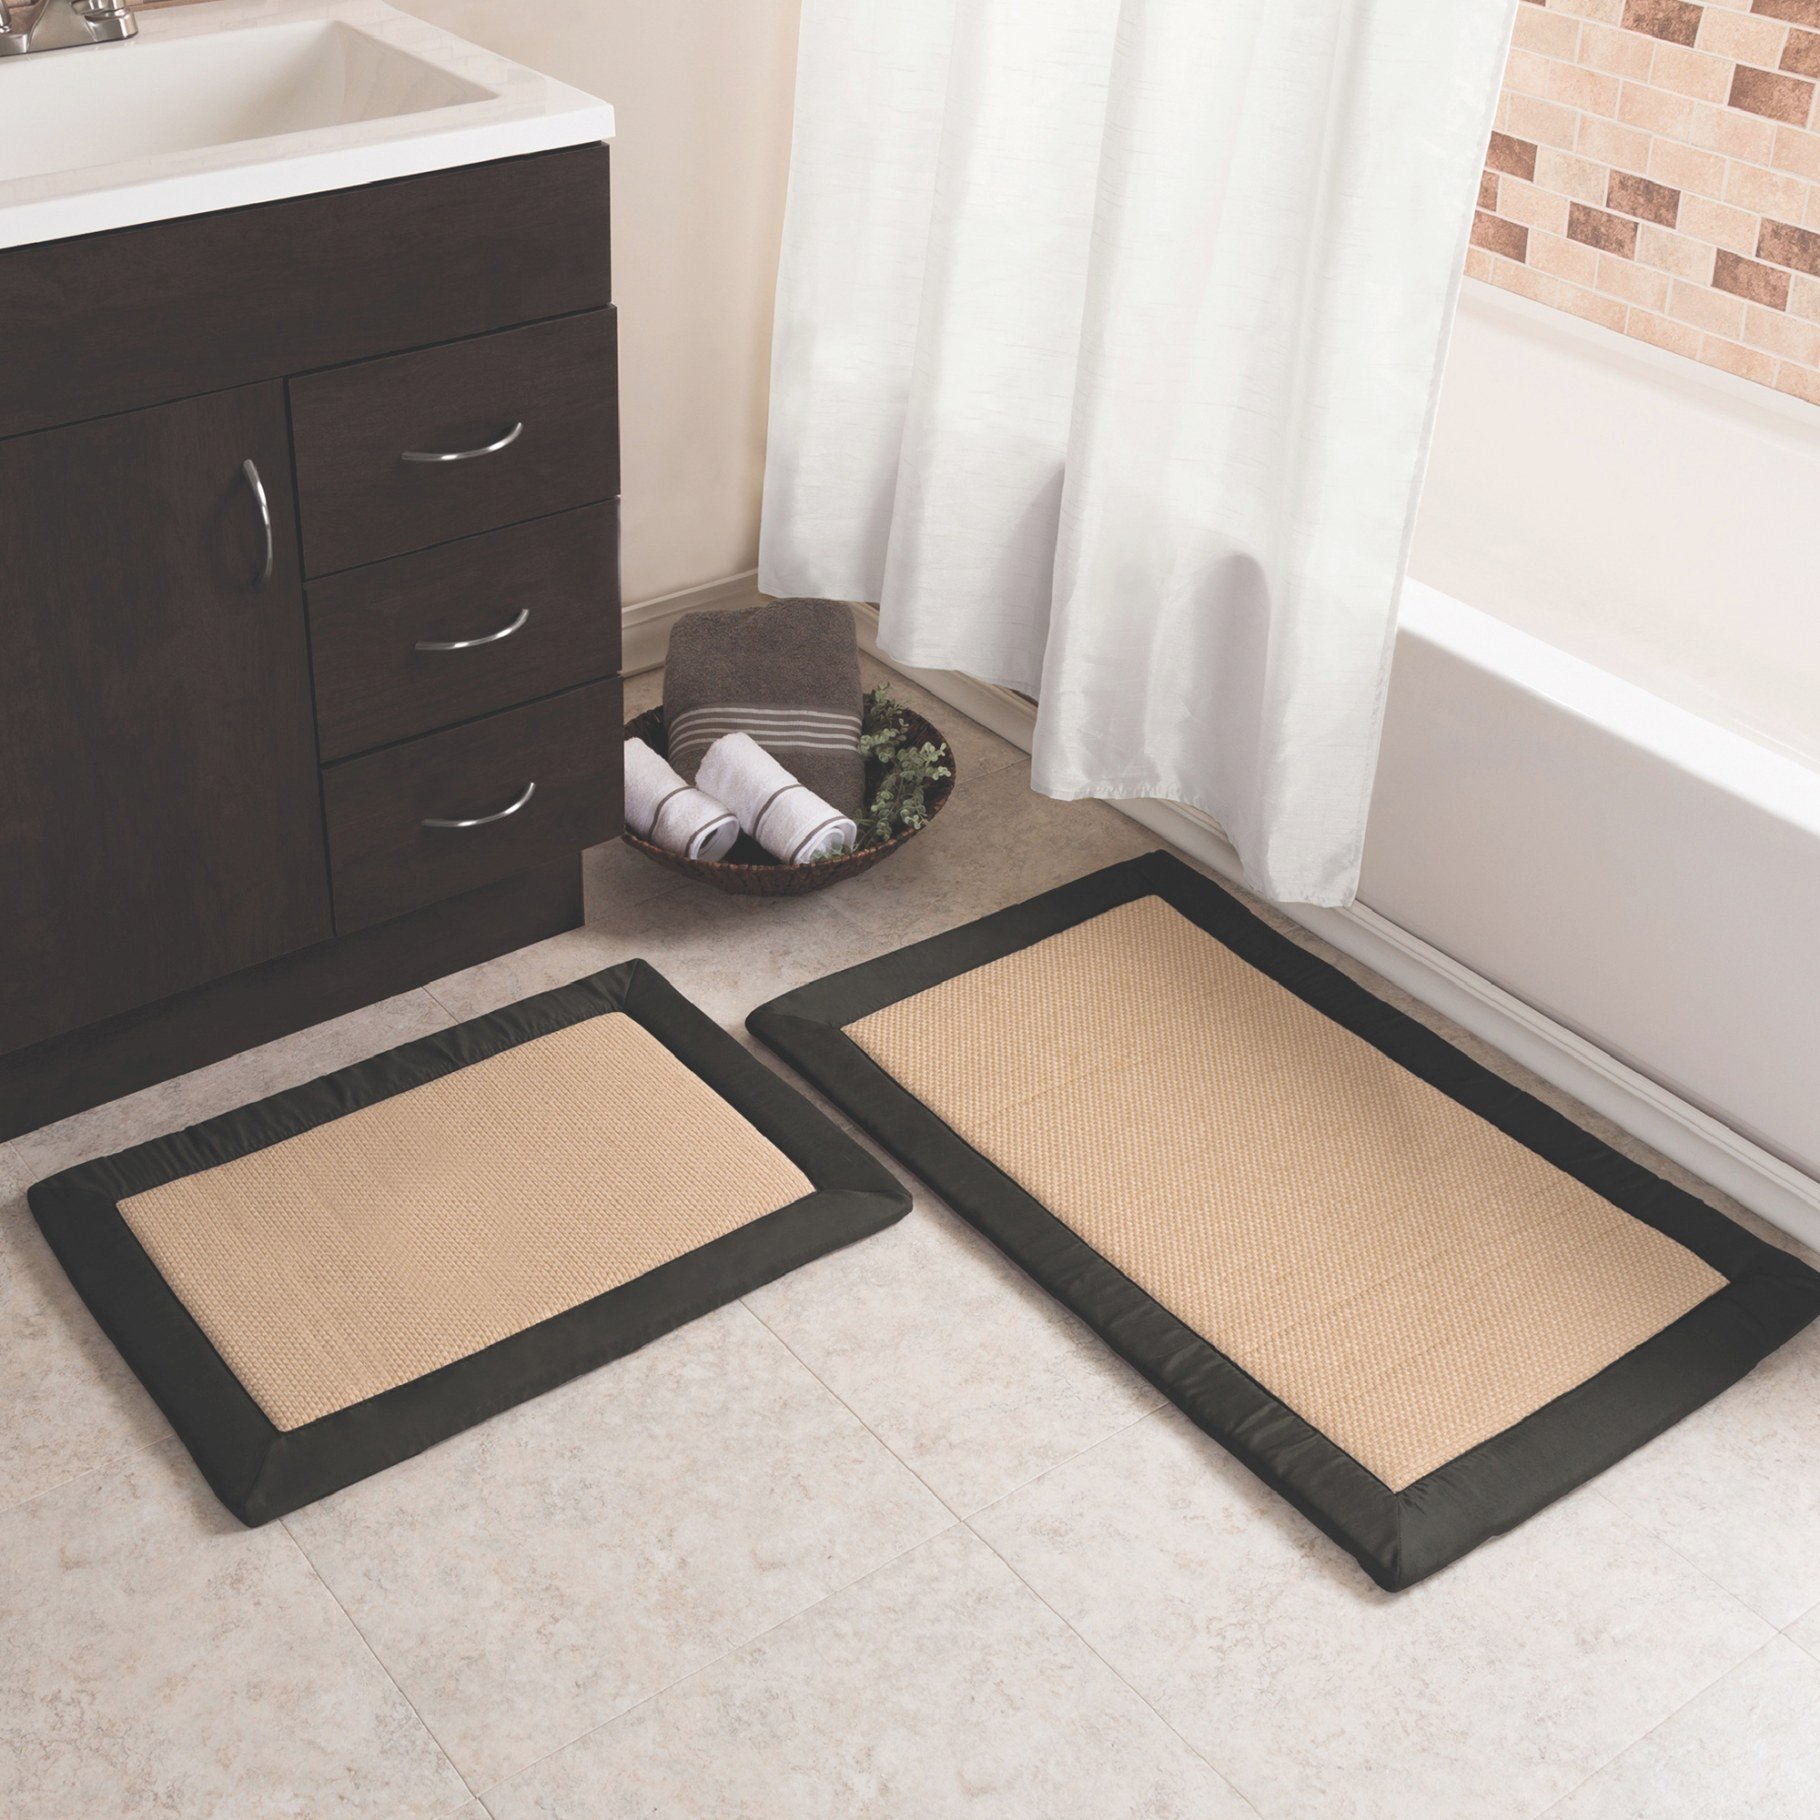 Memory Foam Bath Mats, Set Of 2 — Black And Tan | Www inside Black And Tan Bathroom